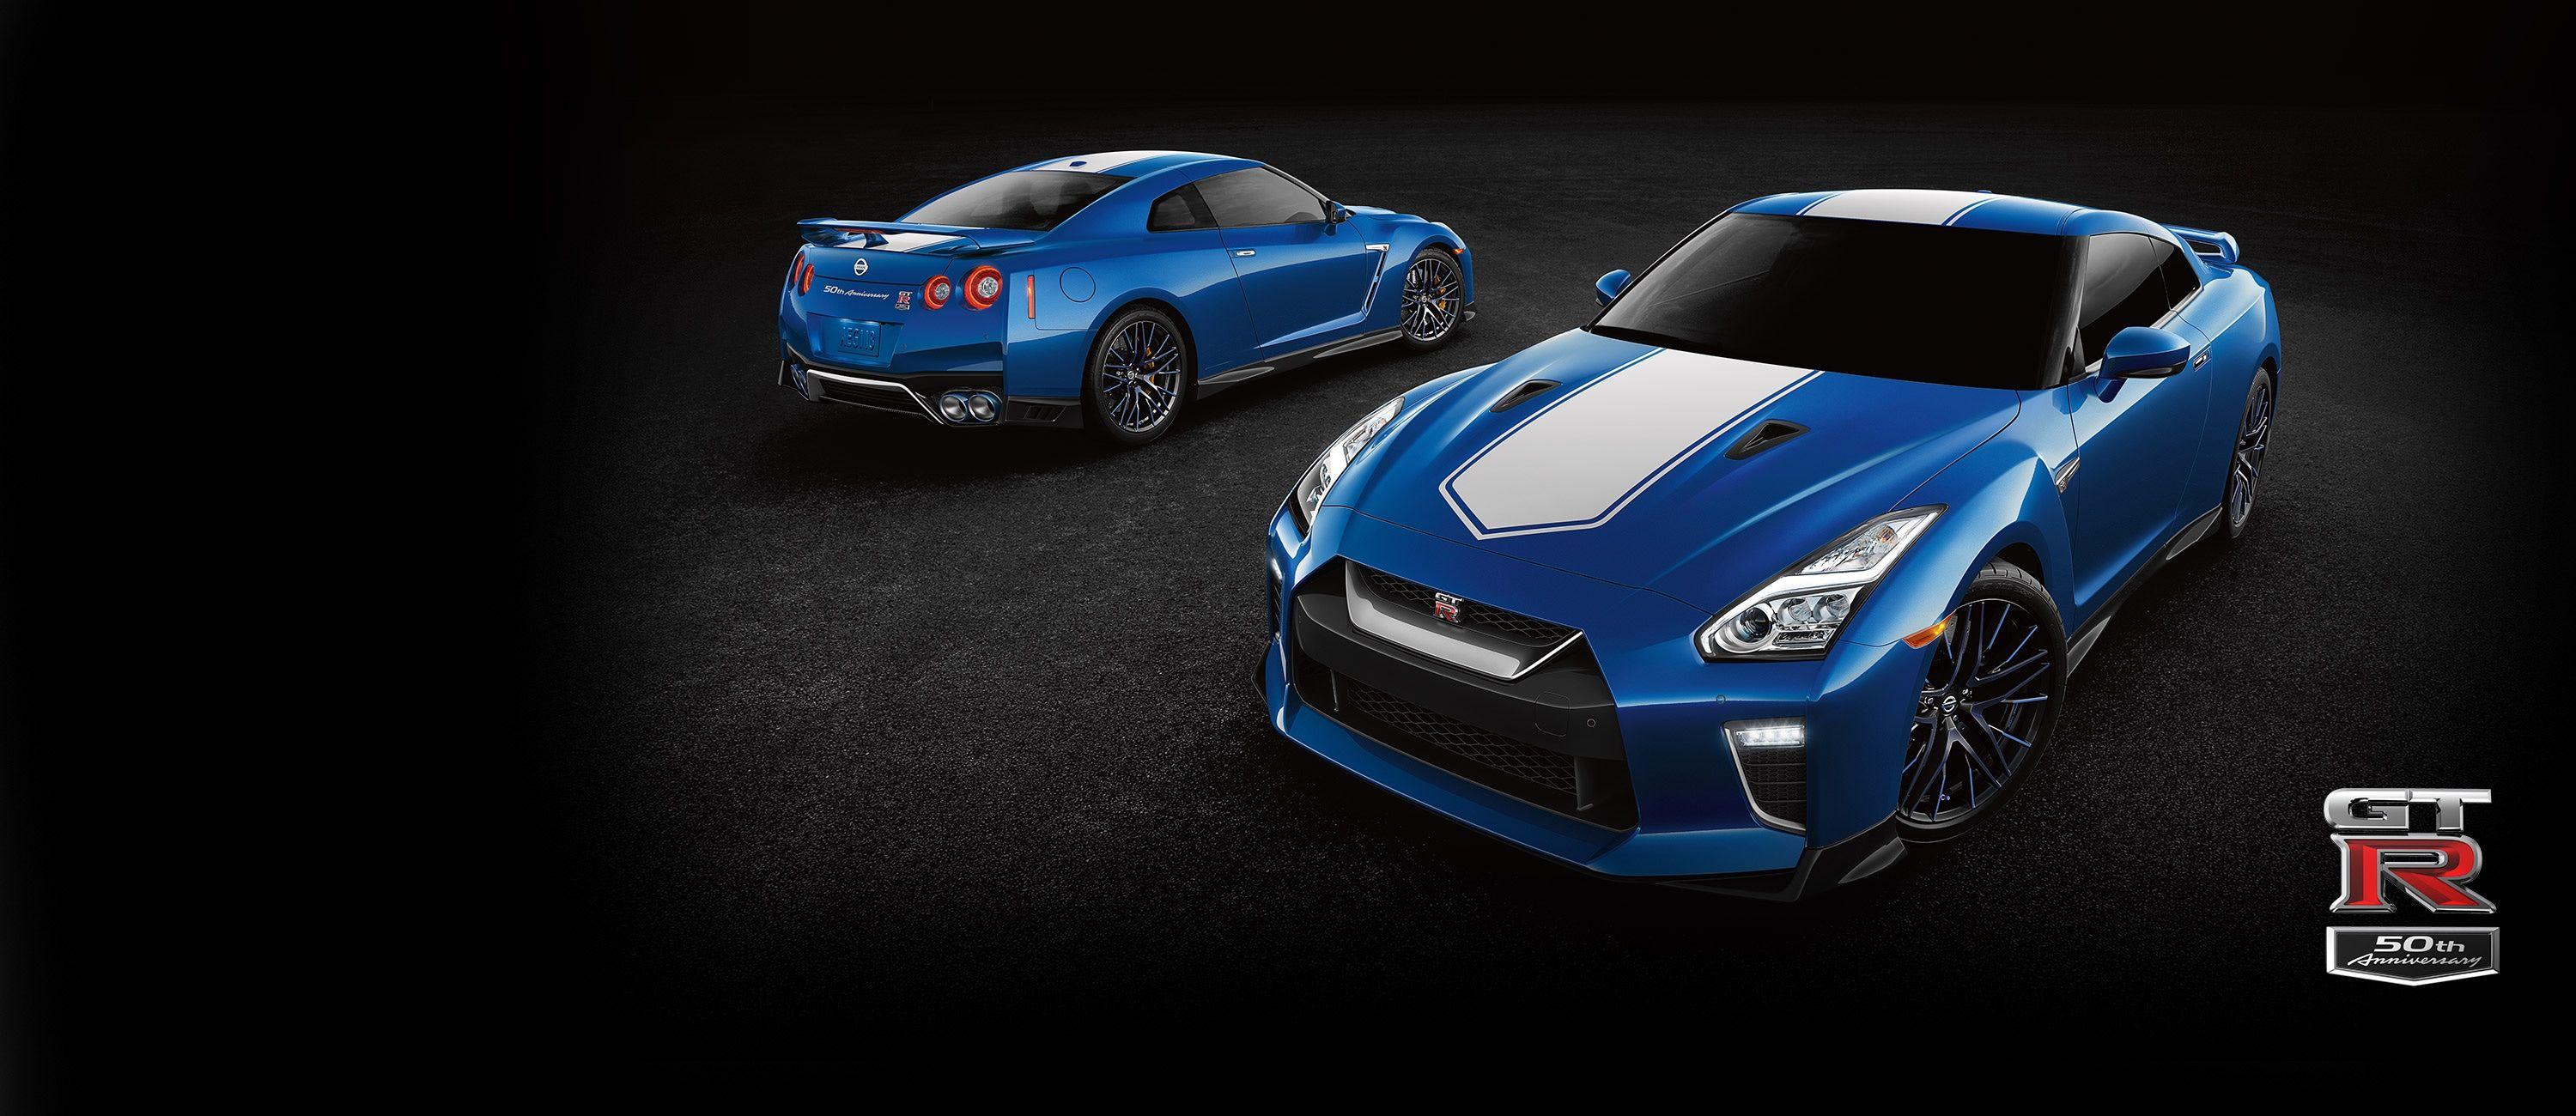 2020 Nissan GTR Sports Car Nissan USA in 2020 (With